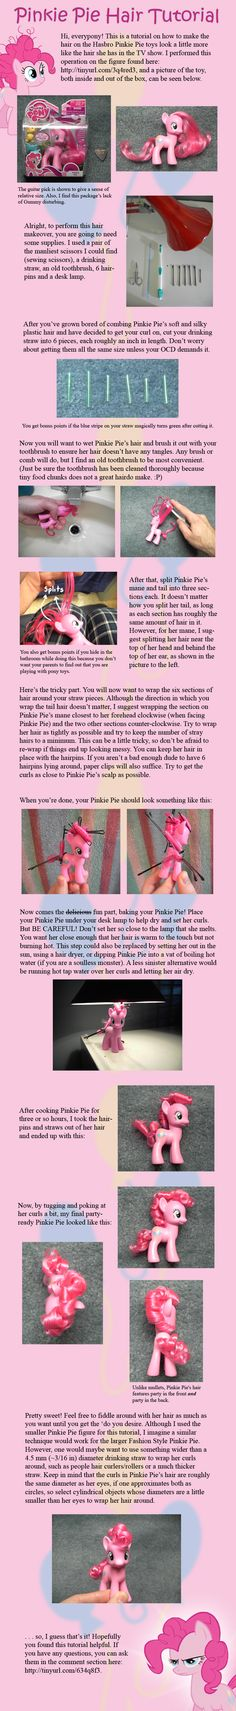 Pinkie Pie Hair Tutorial by ~countschlick on deviantART Awwwww how cute